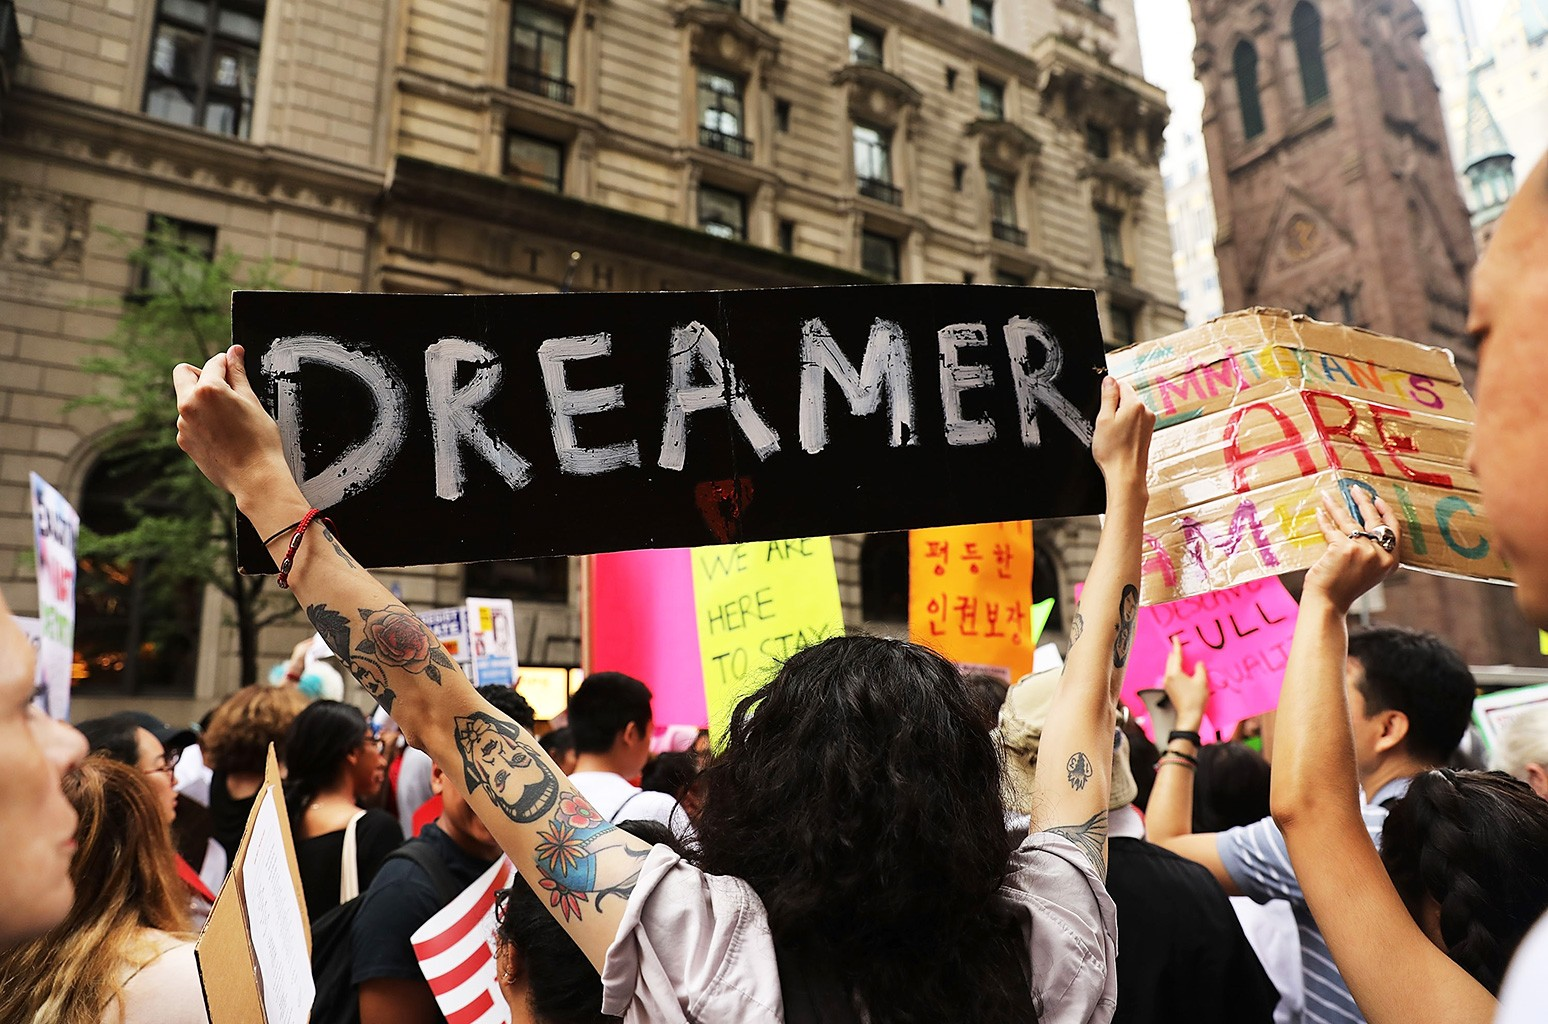 Dozens of immigration advocates and supporters attend a rally outside of Trump Tower along Fifth Avenue on August 15, 2017 in New York City.